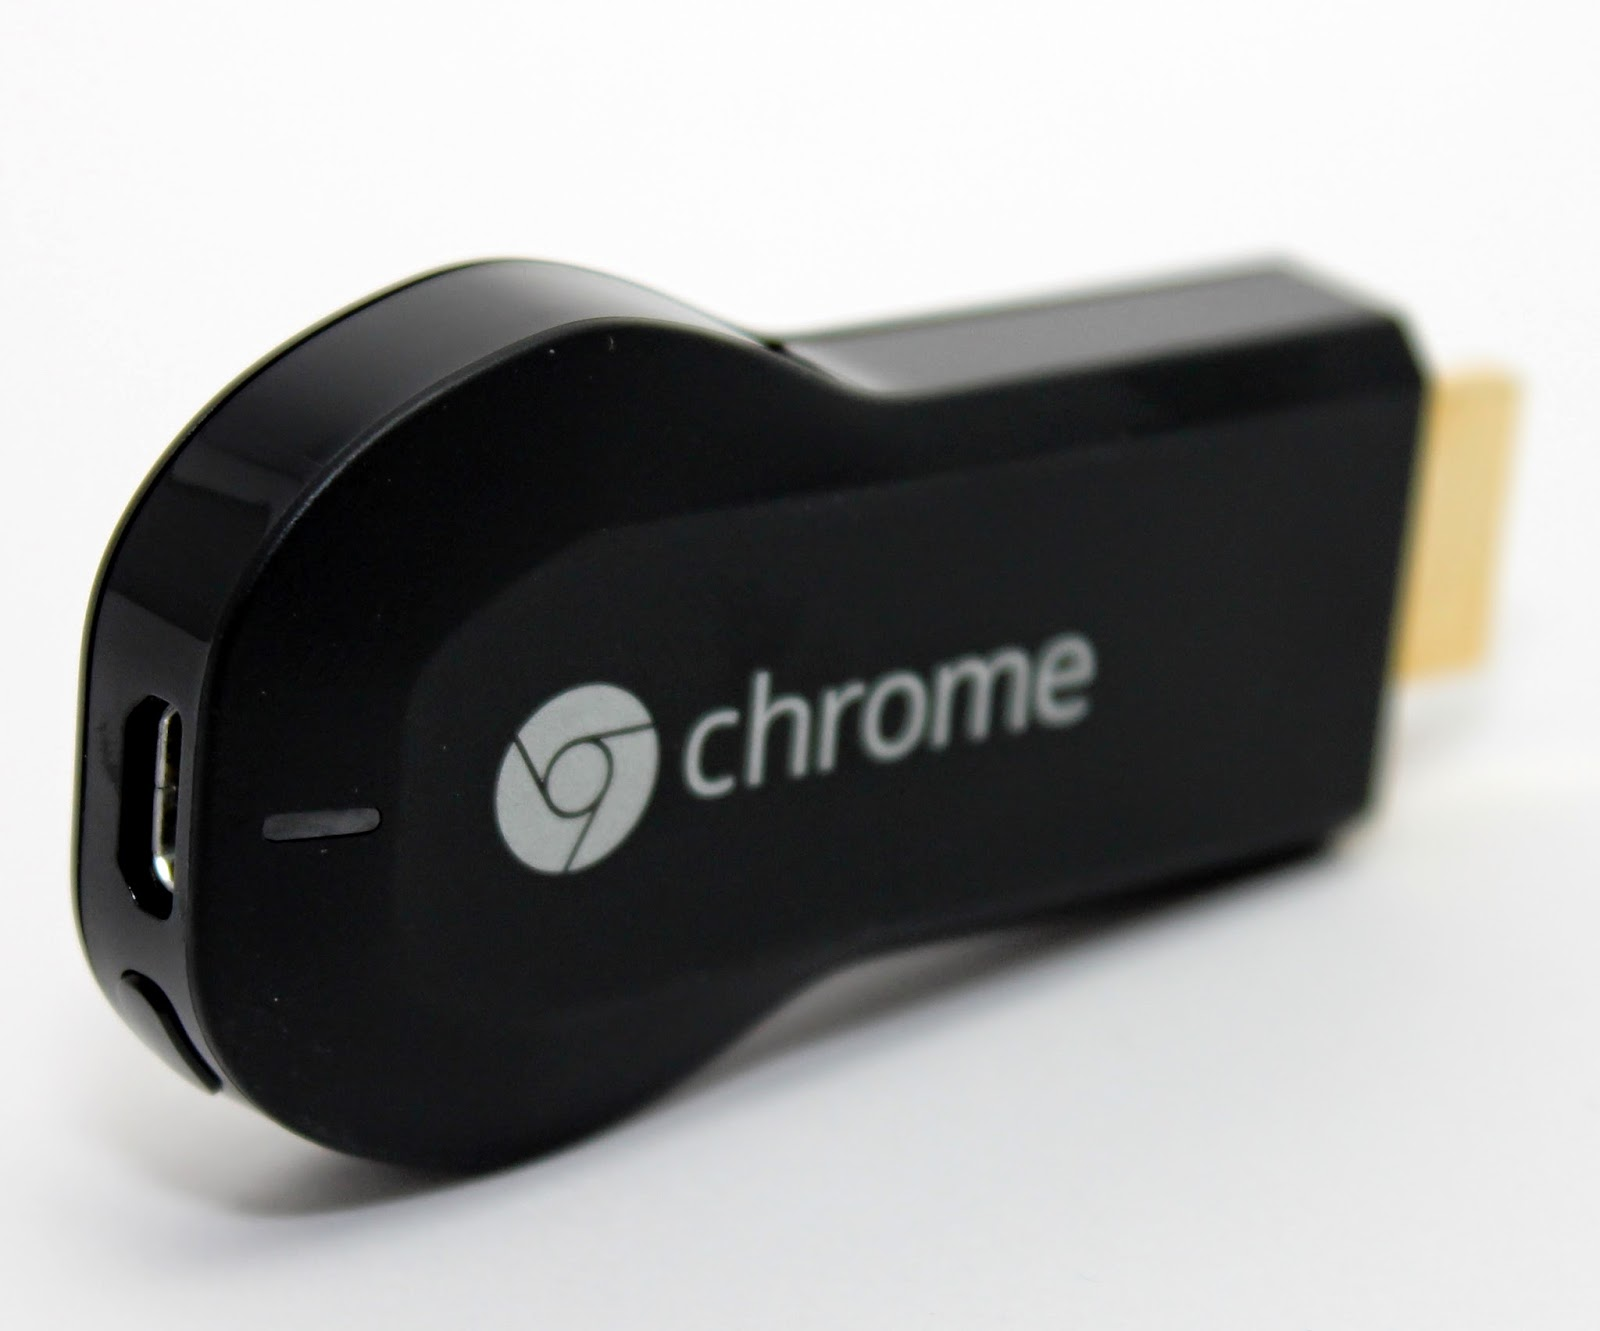 Best Google Chromecast Review - What is google chromecast